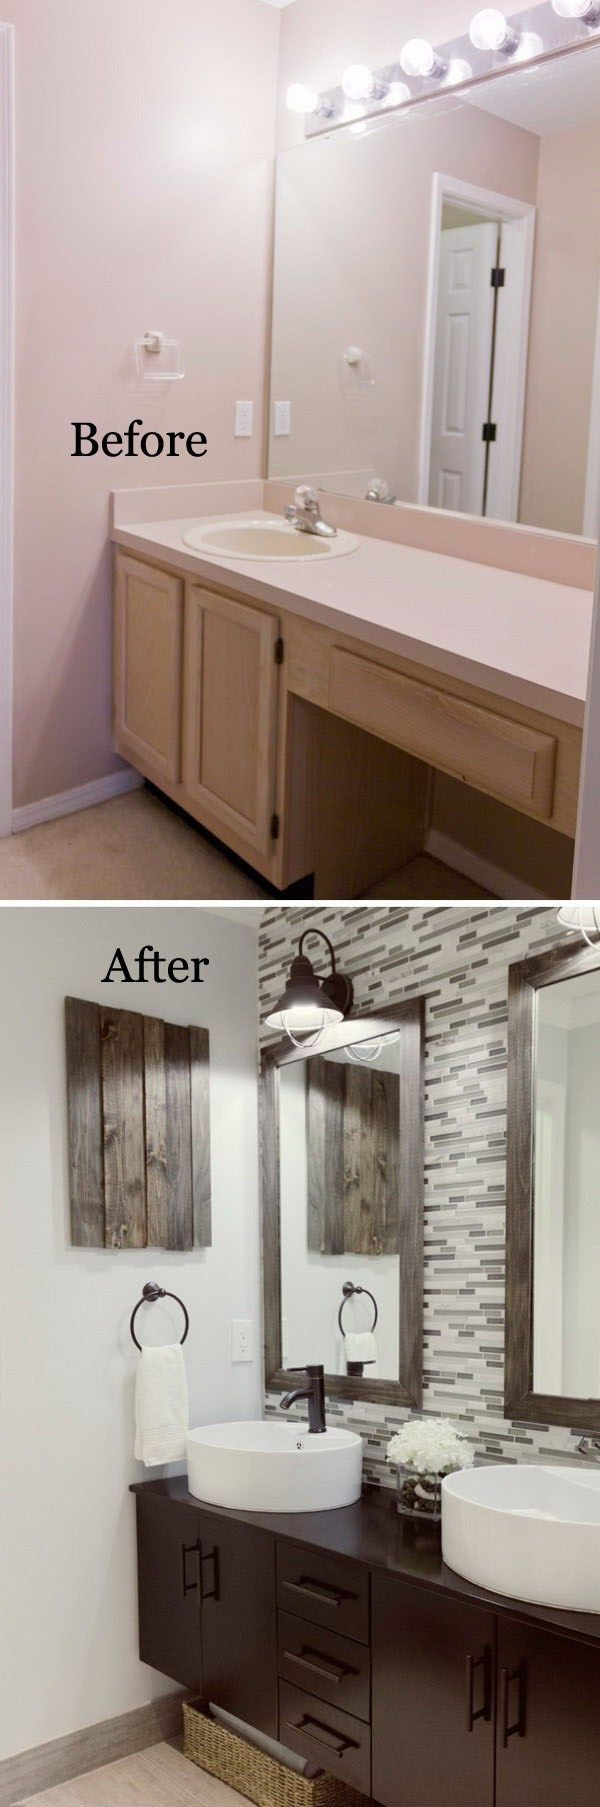 Bathroom Remodeling Ideas Before And After.Stunning Master Bathroom Remodel Before After Diy Bathroom